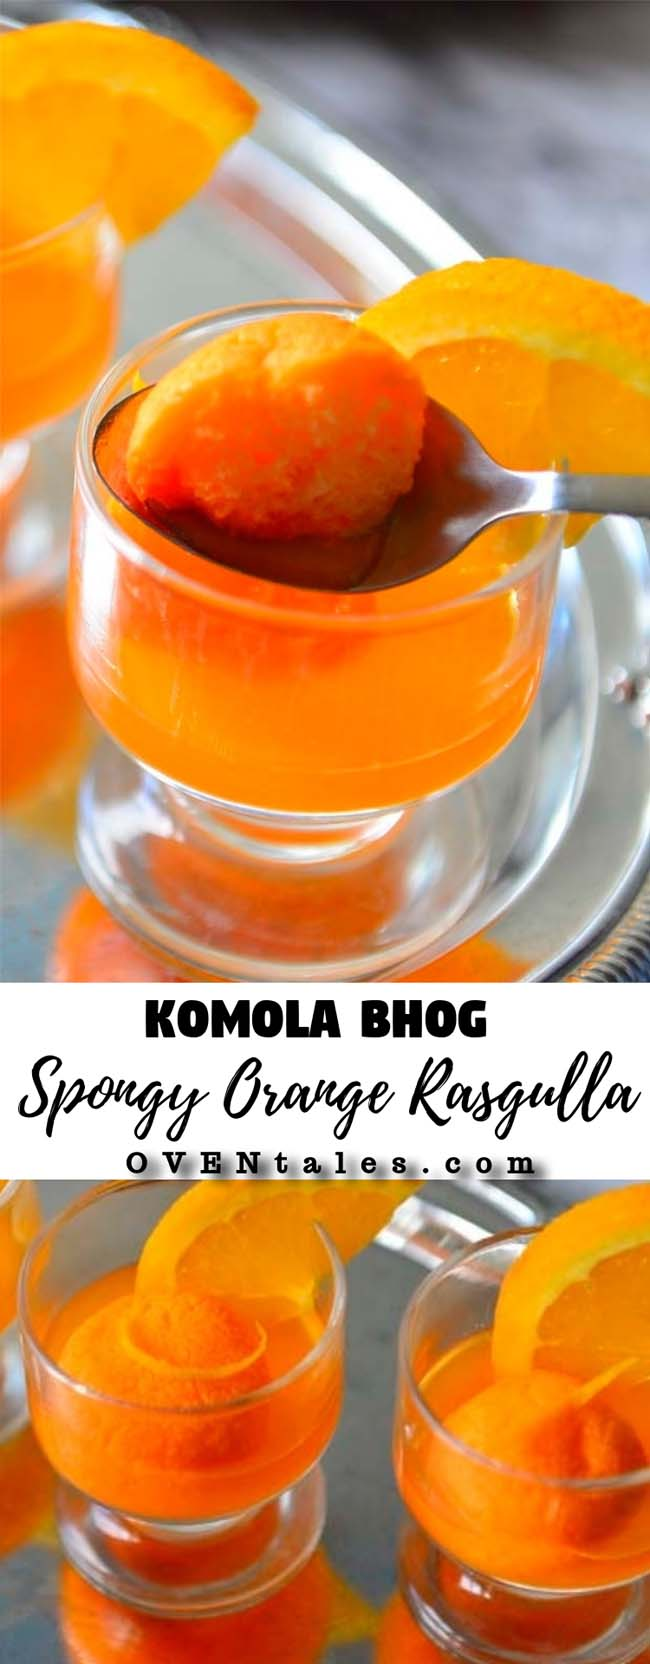 Komola Bhog The orange Rasgulla